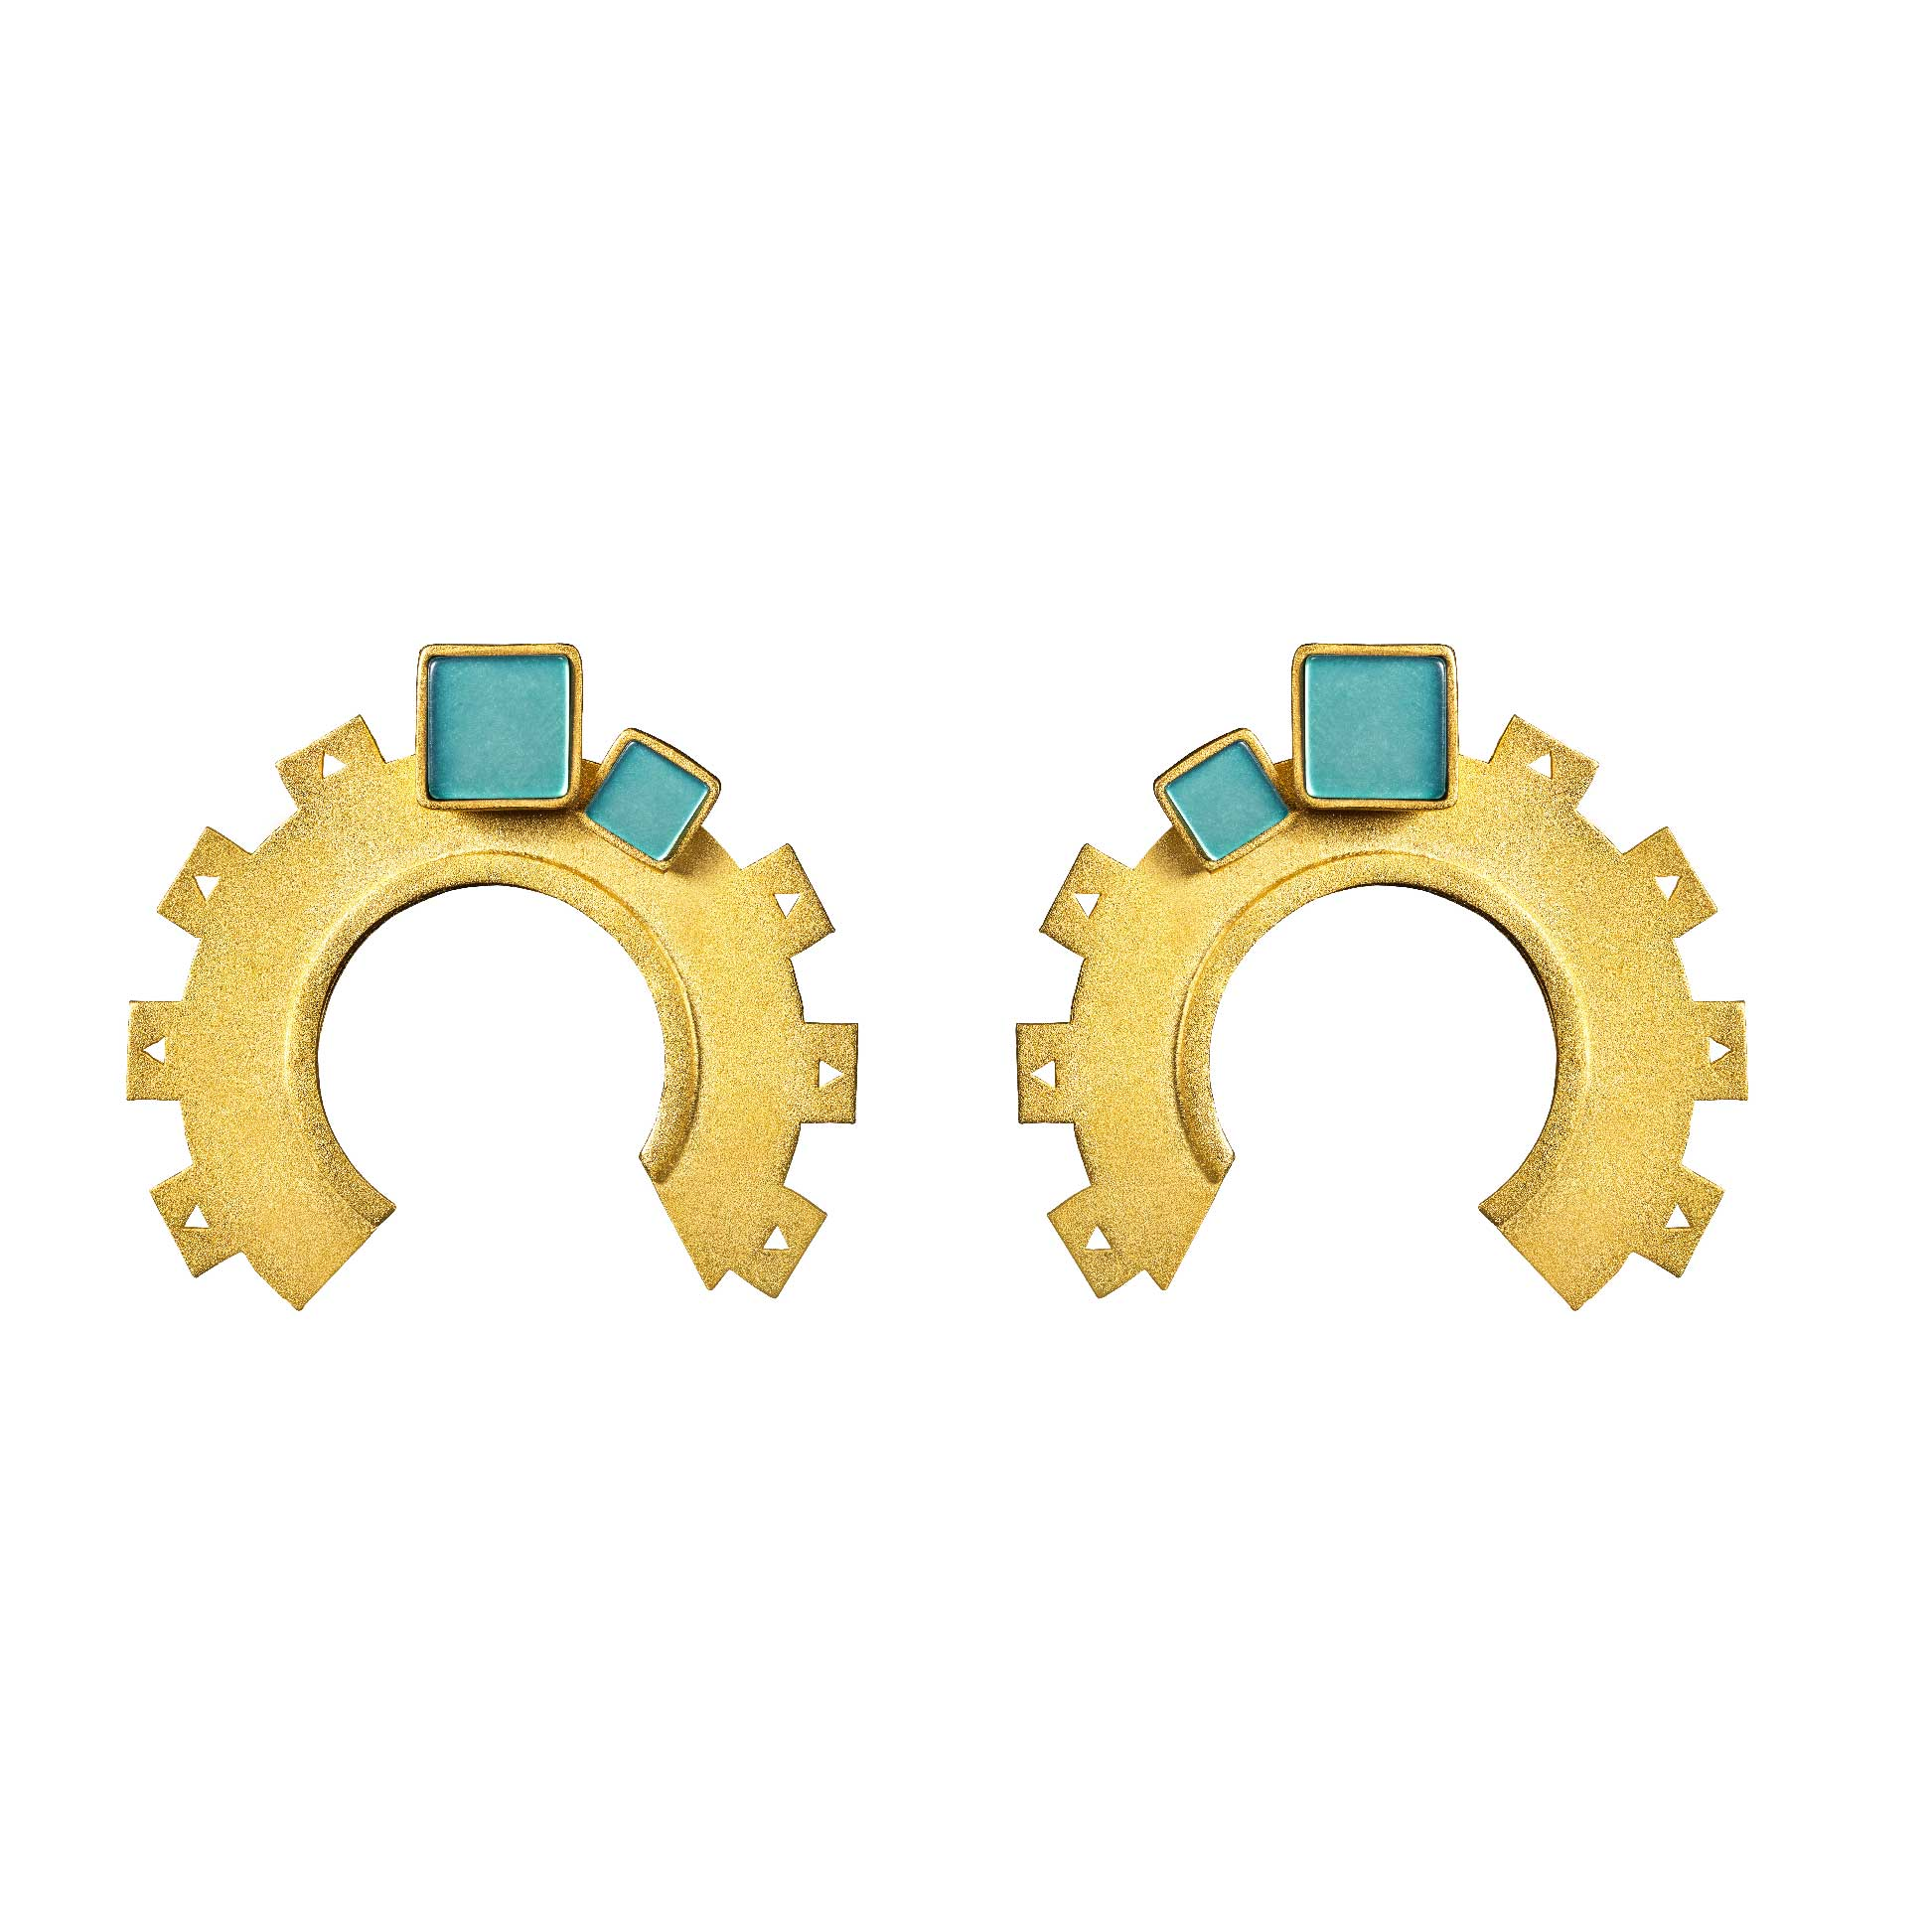 COGS AND WHEELS EARRINGS